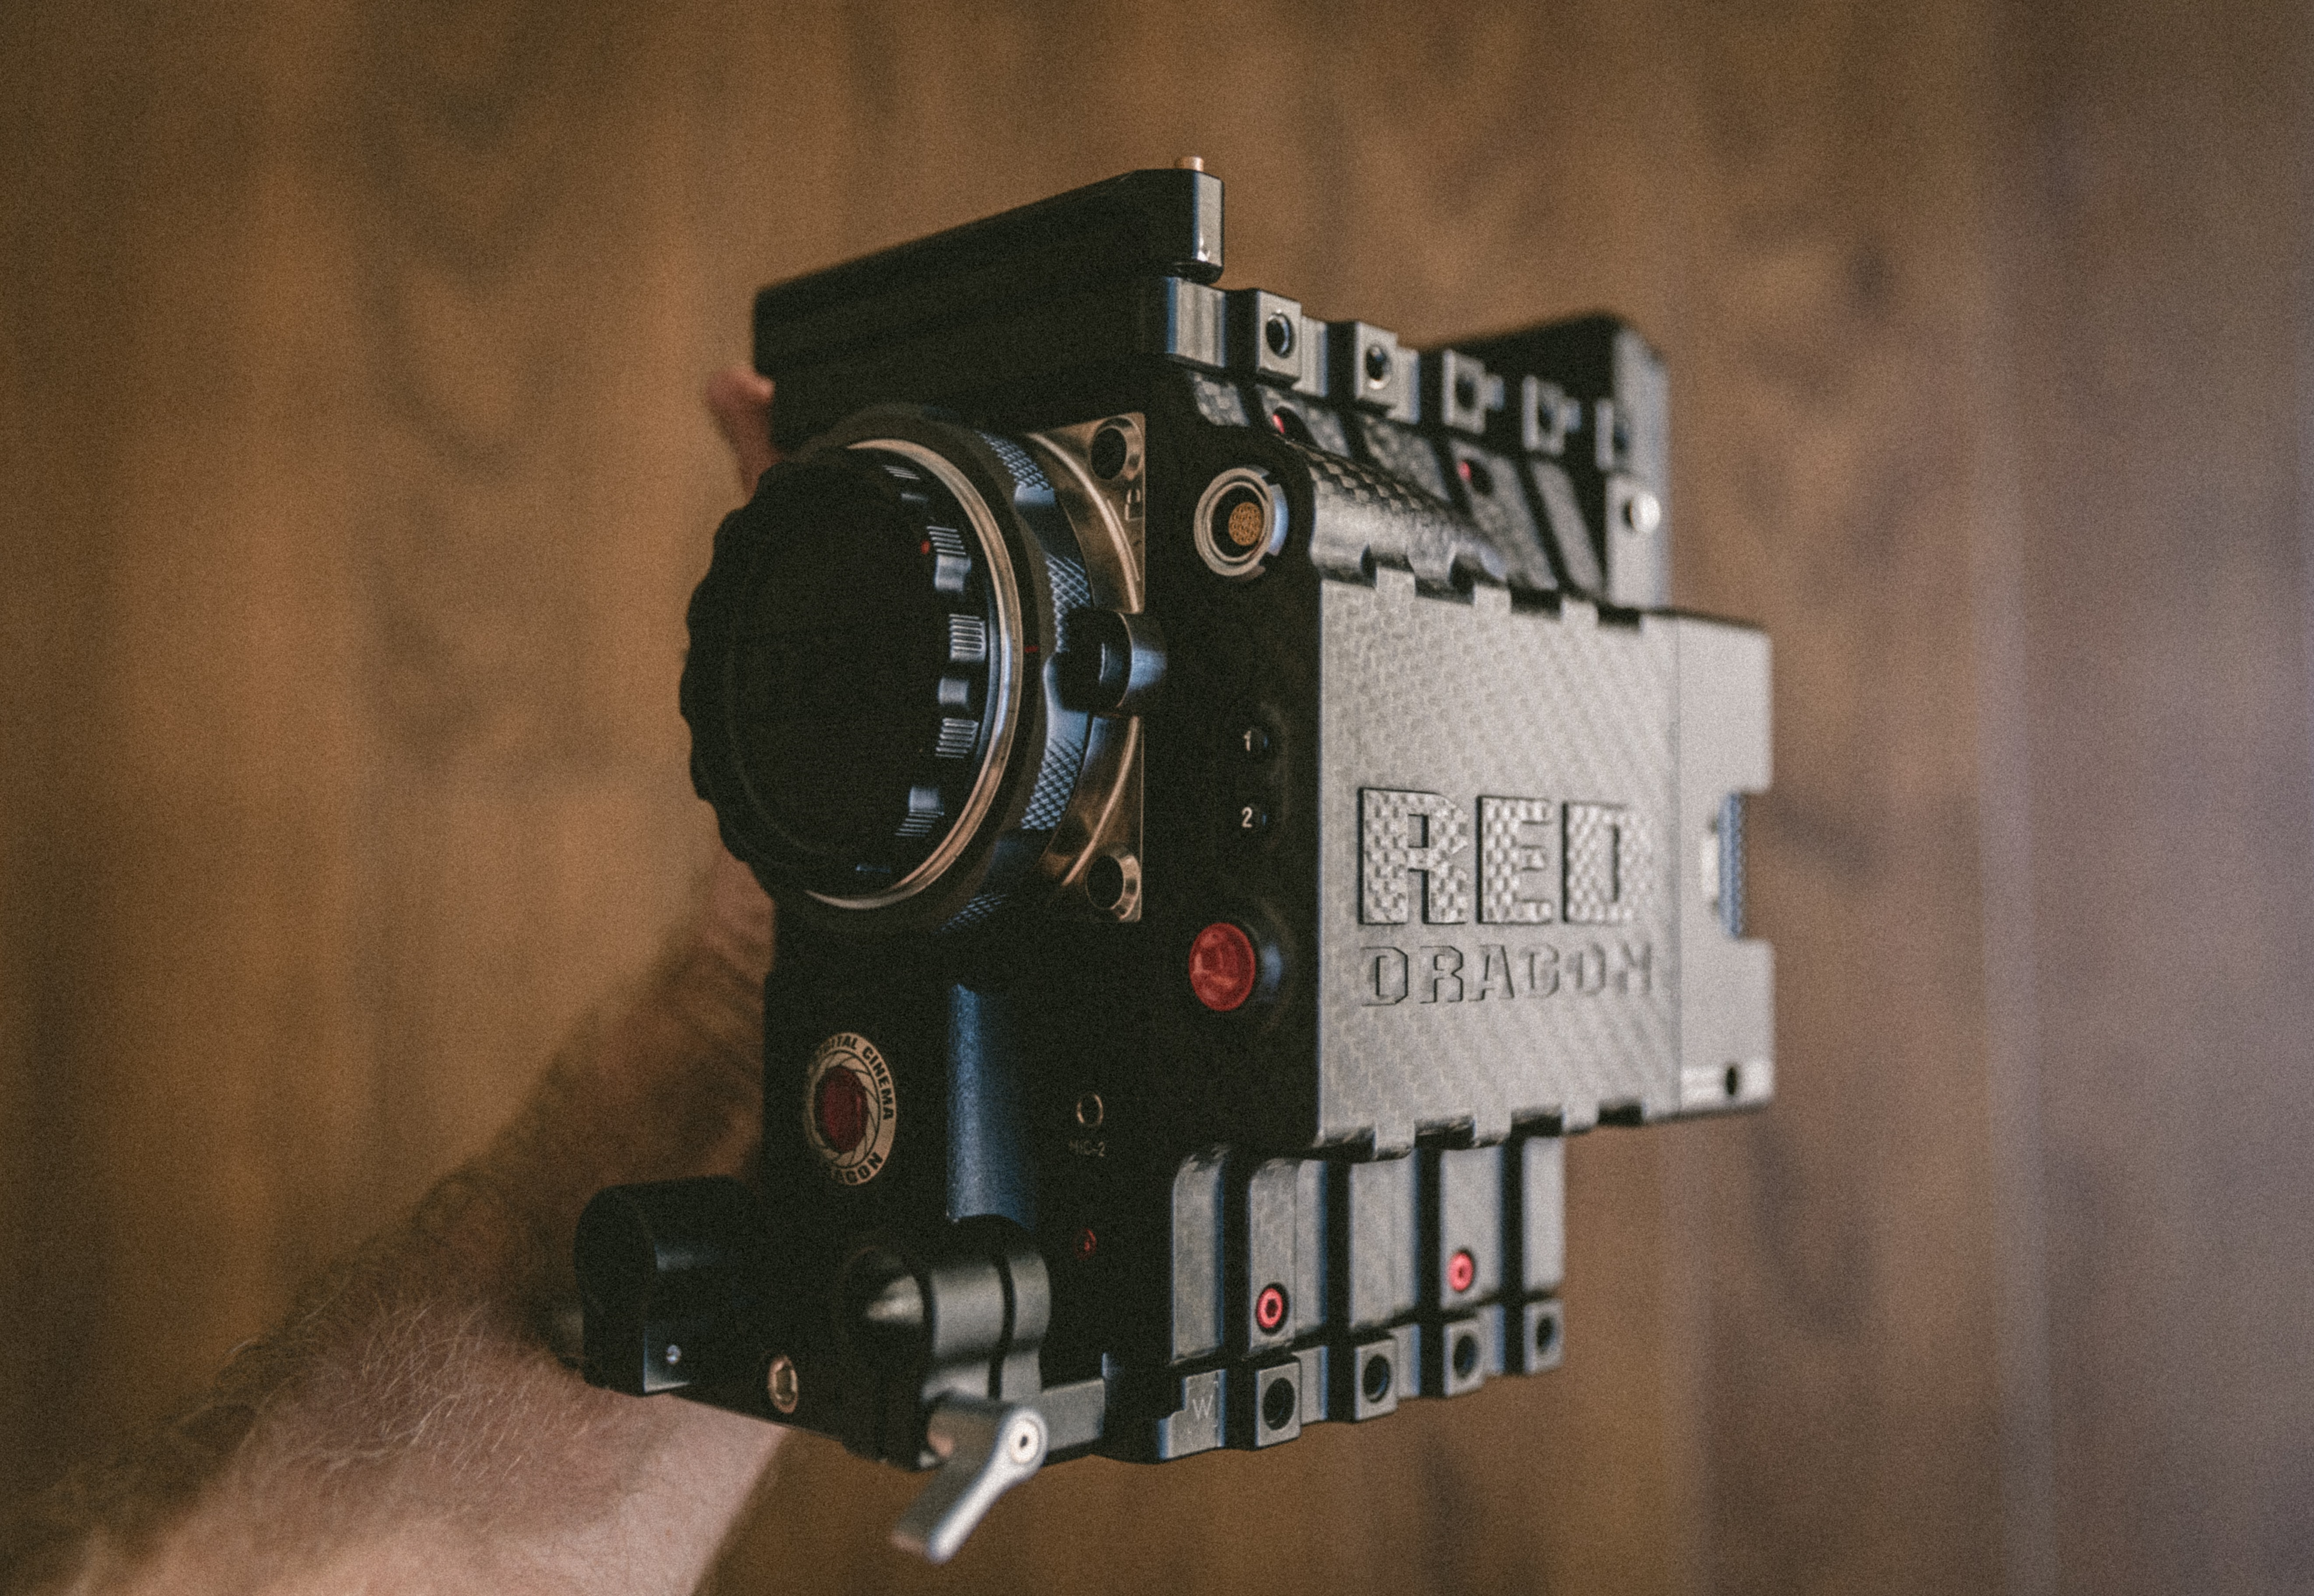 A person's hand holding a professional RED Dragon video camera